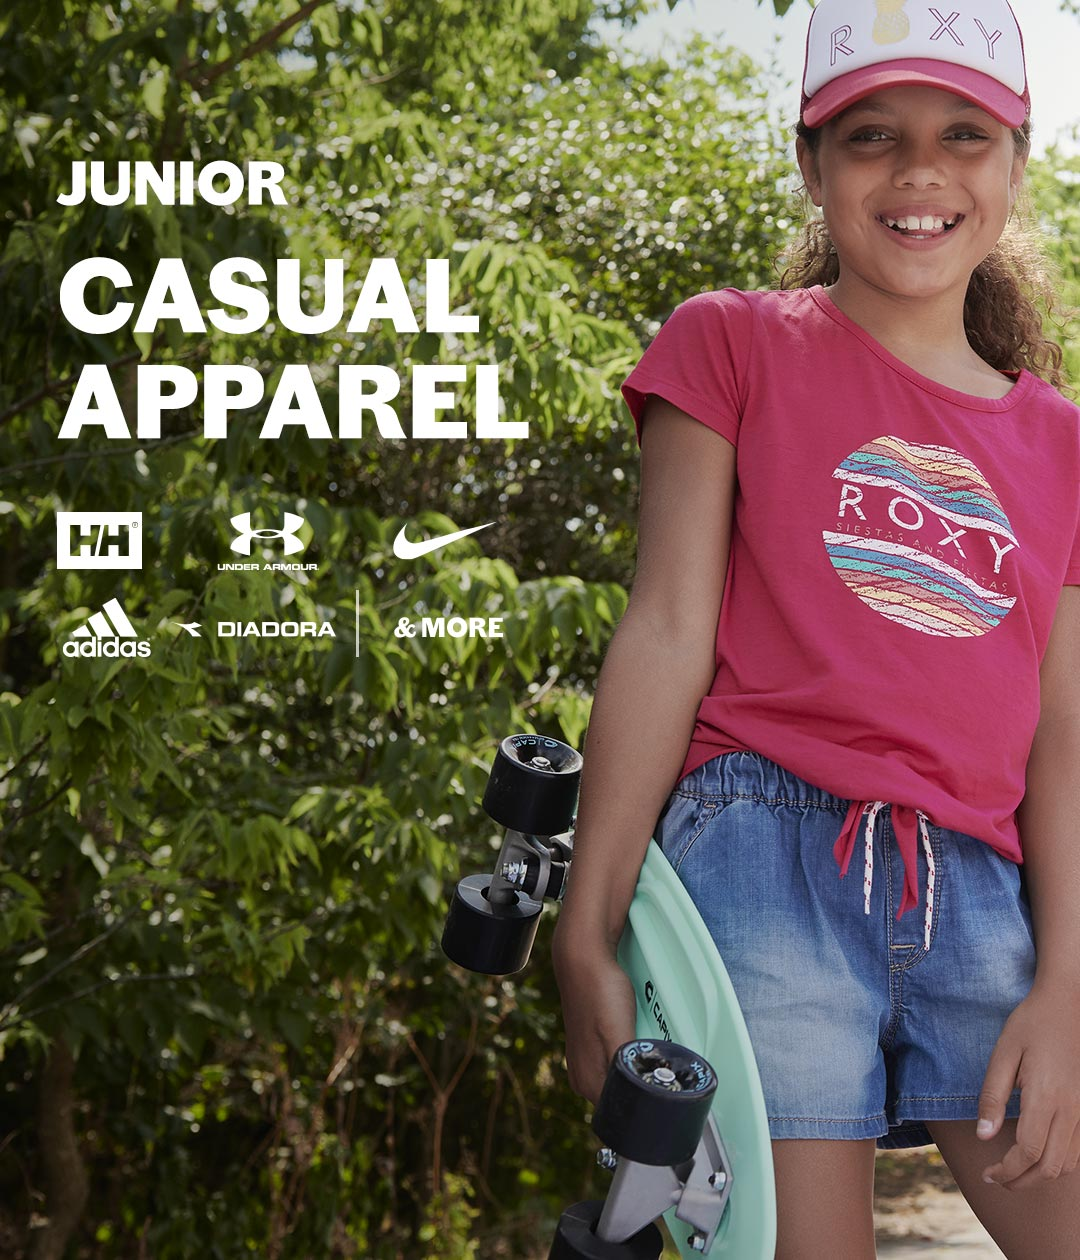 Junior casual apparel sale